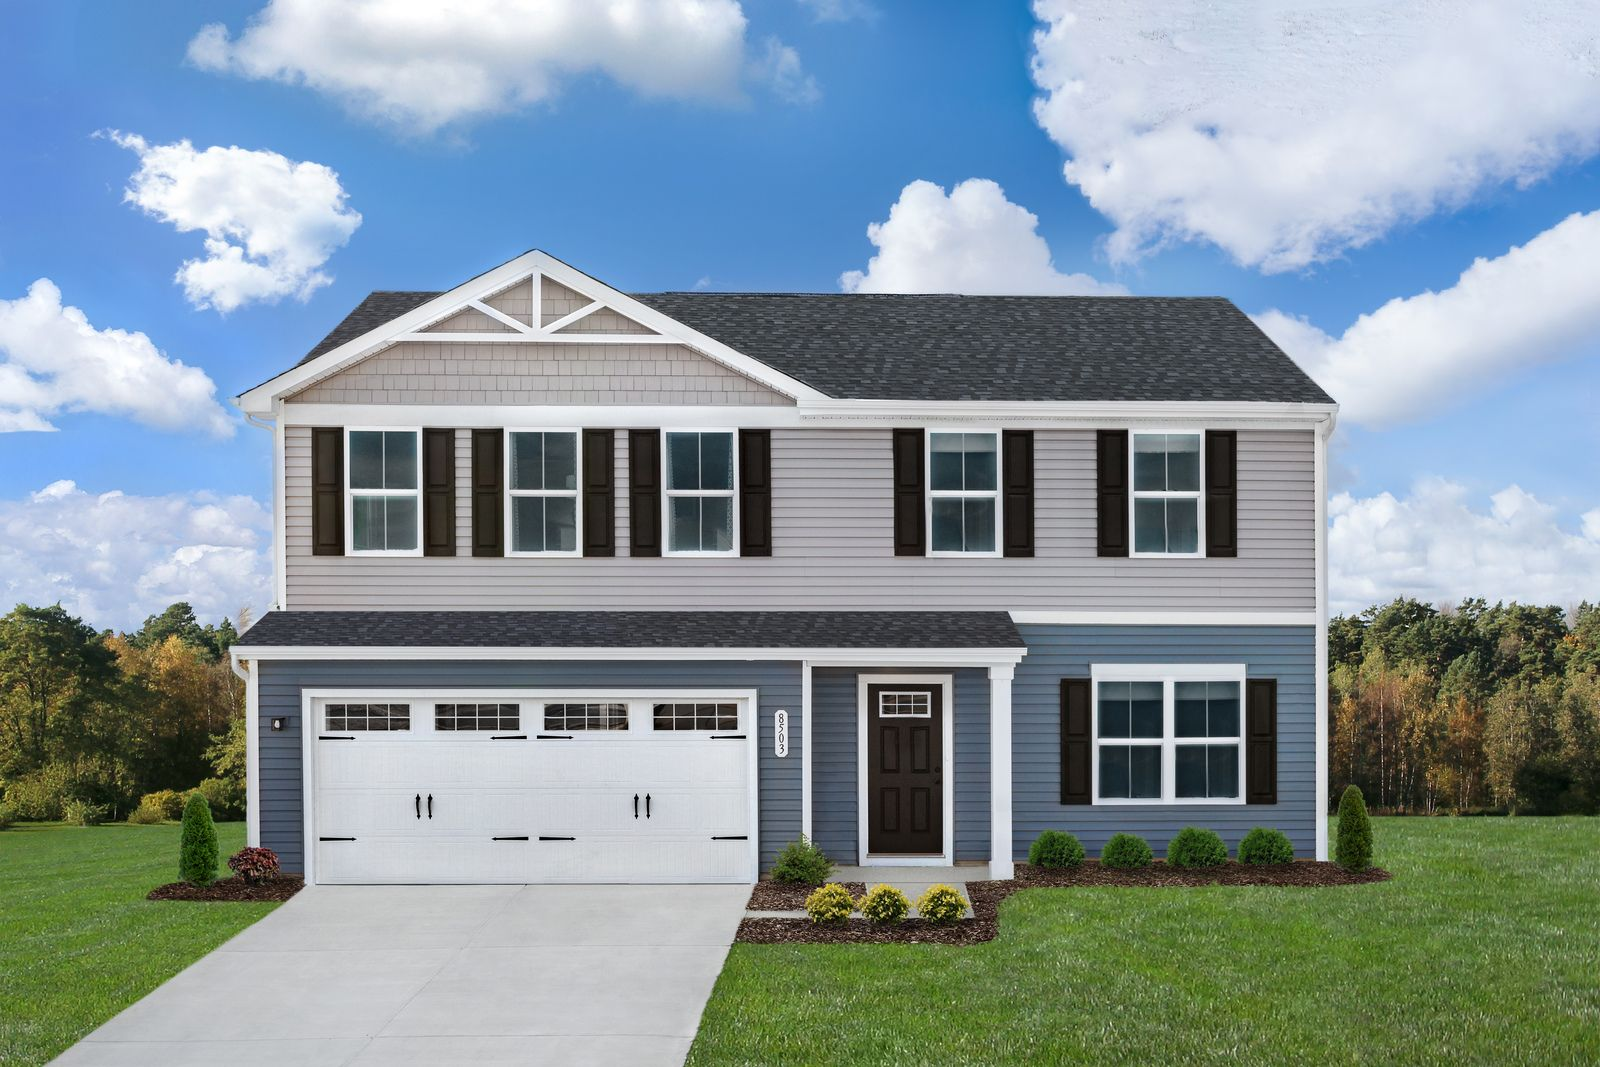 BEST-PRICED NEW HOMES IN WEST CARROLLTON SCHOOLS AT PINNACLE RIDGE:Own a new home for what you pay in rent! Up to 5 bedrooms & all included appliances, deck, & full basements! Easy financing. Minutes to I-75—$190s. Click here to schedule your visit today!